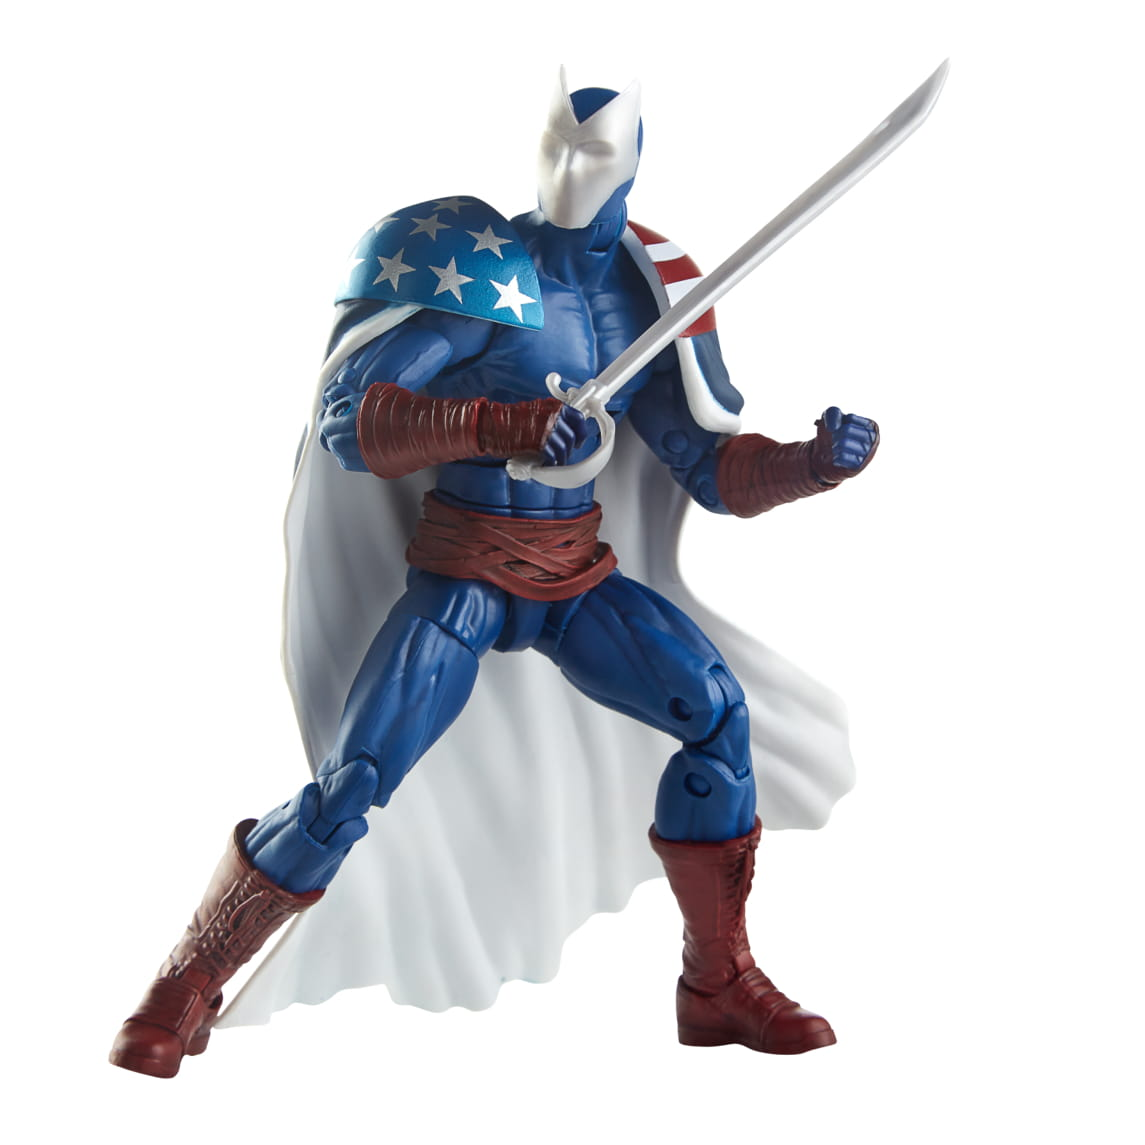 Avengers Citizen V Marvel Legends Figure by Hasbro -Hasbro - India - www.superherotoystore.com